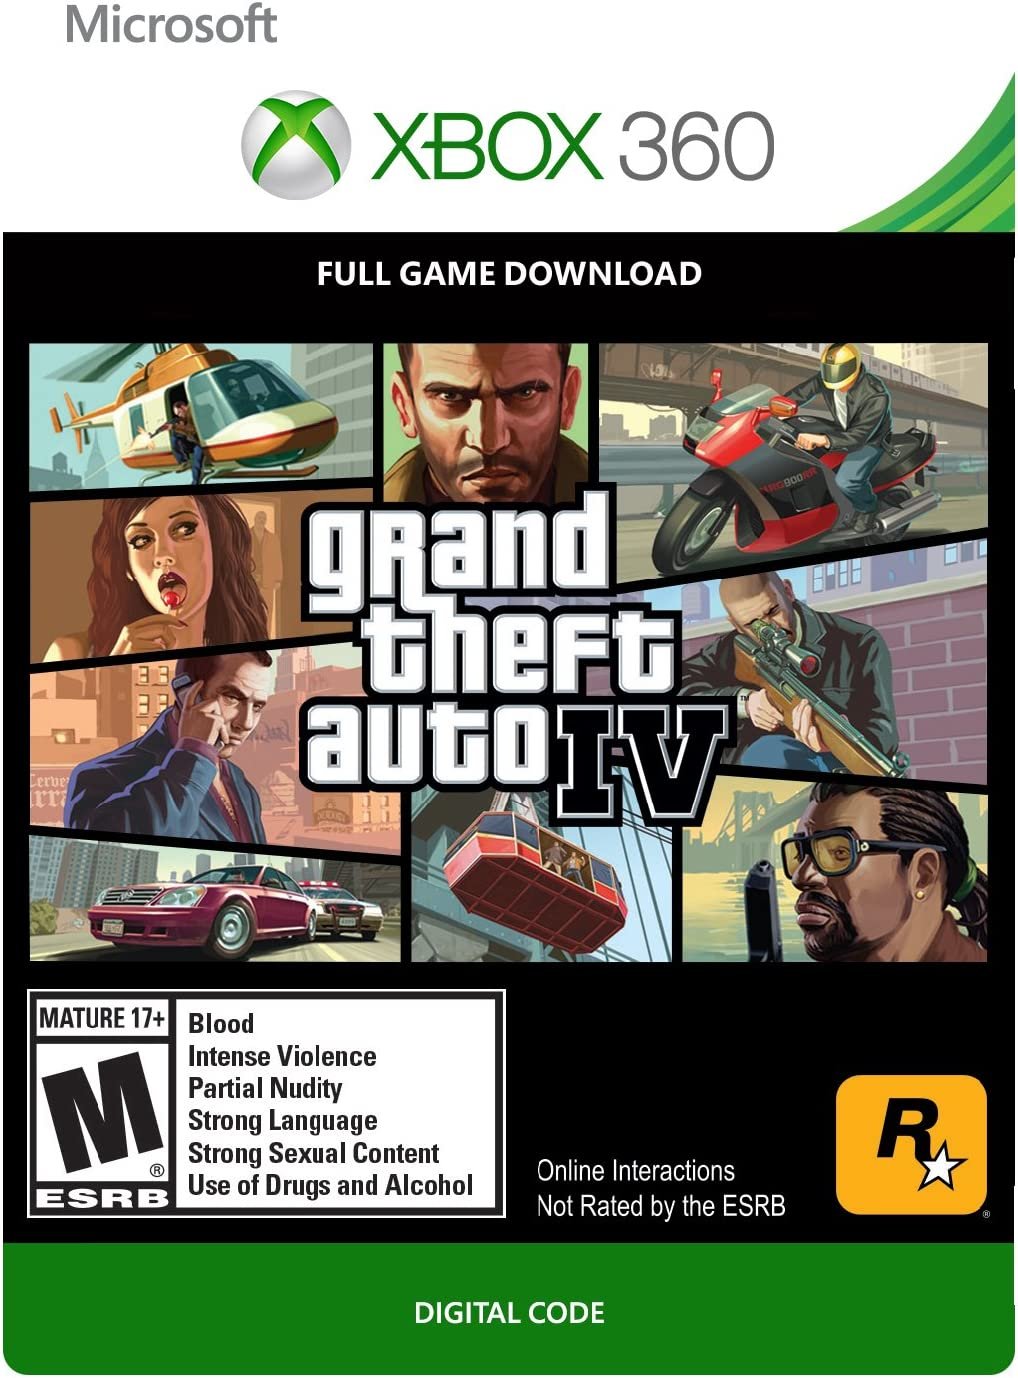 Amazon com: Grand Theft Auto IV - Xbox 360 Digital Code: Video Games